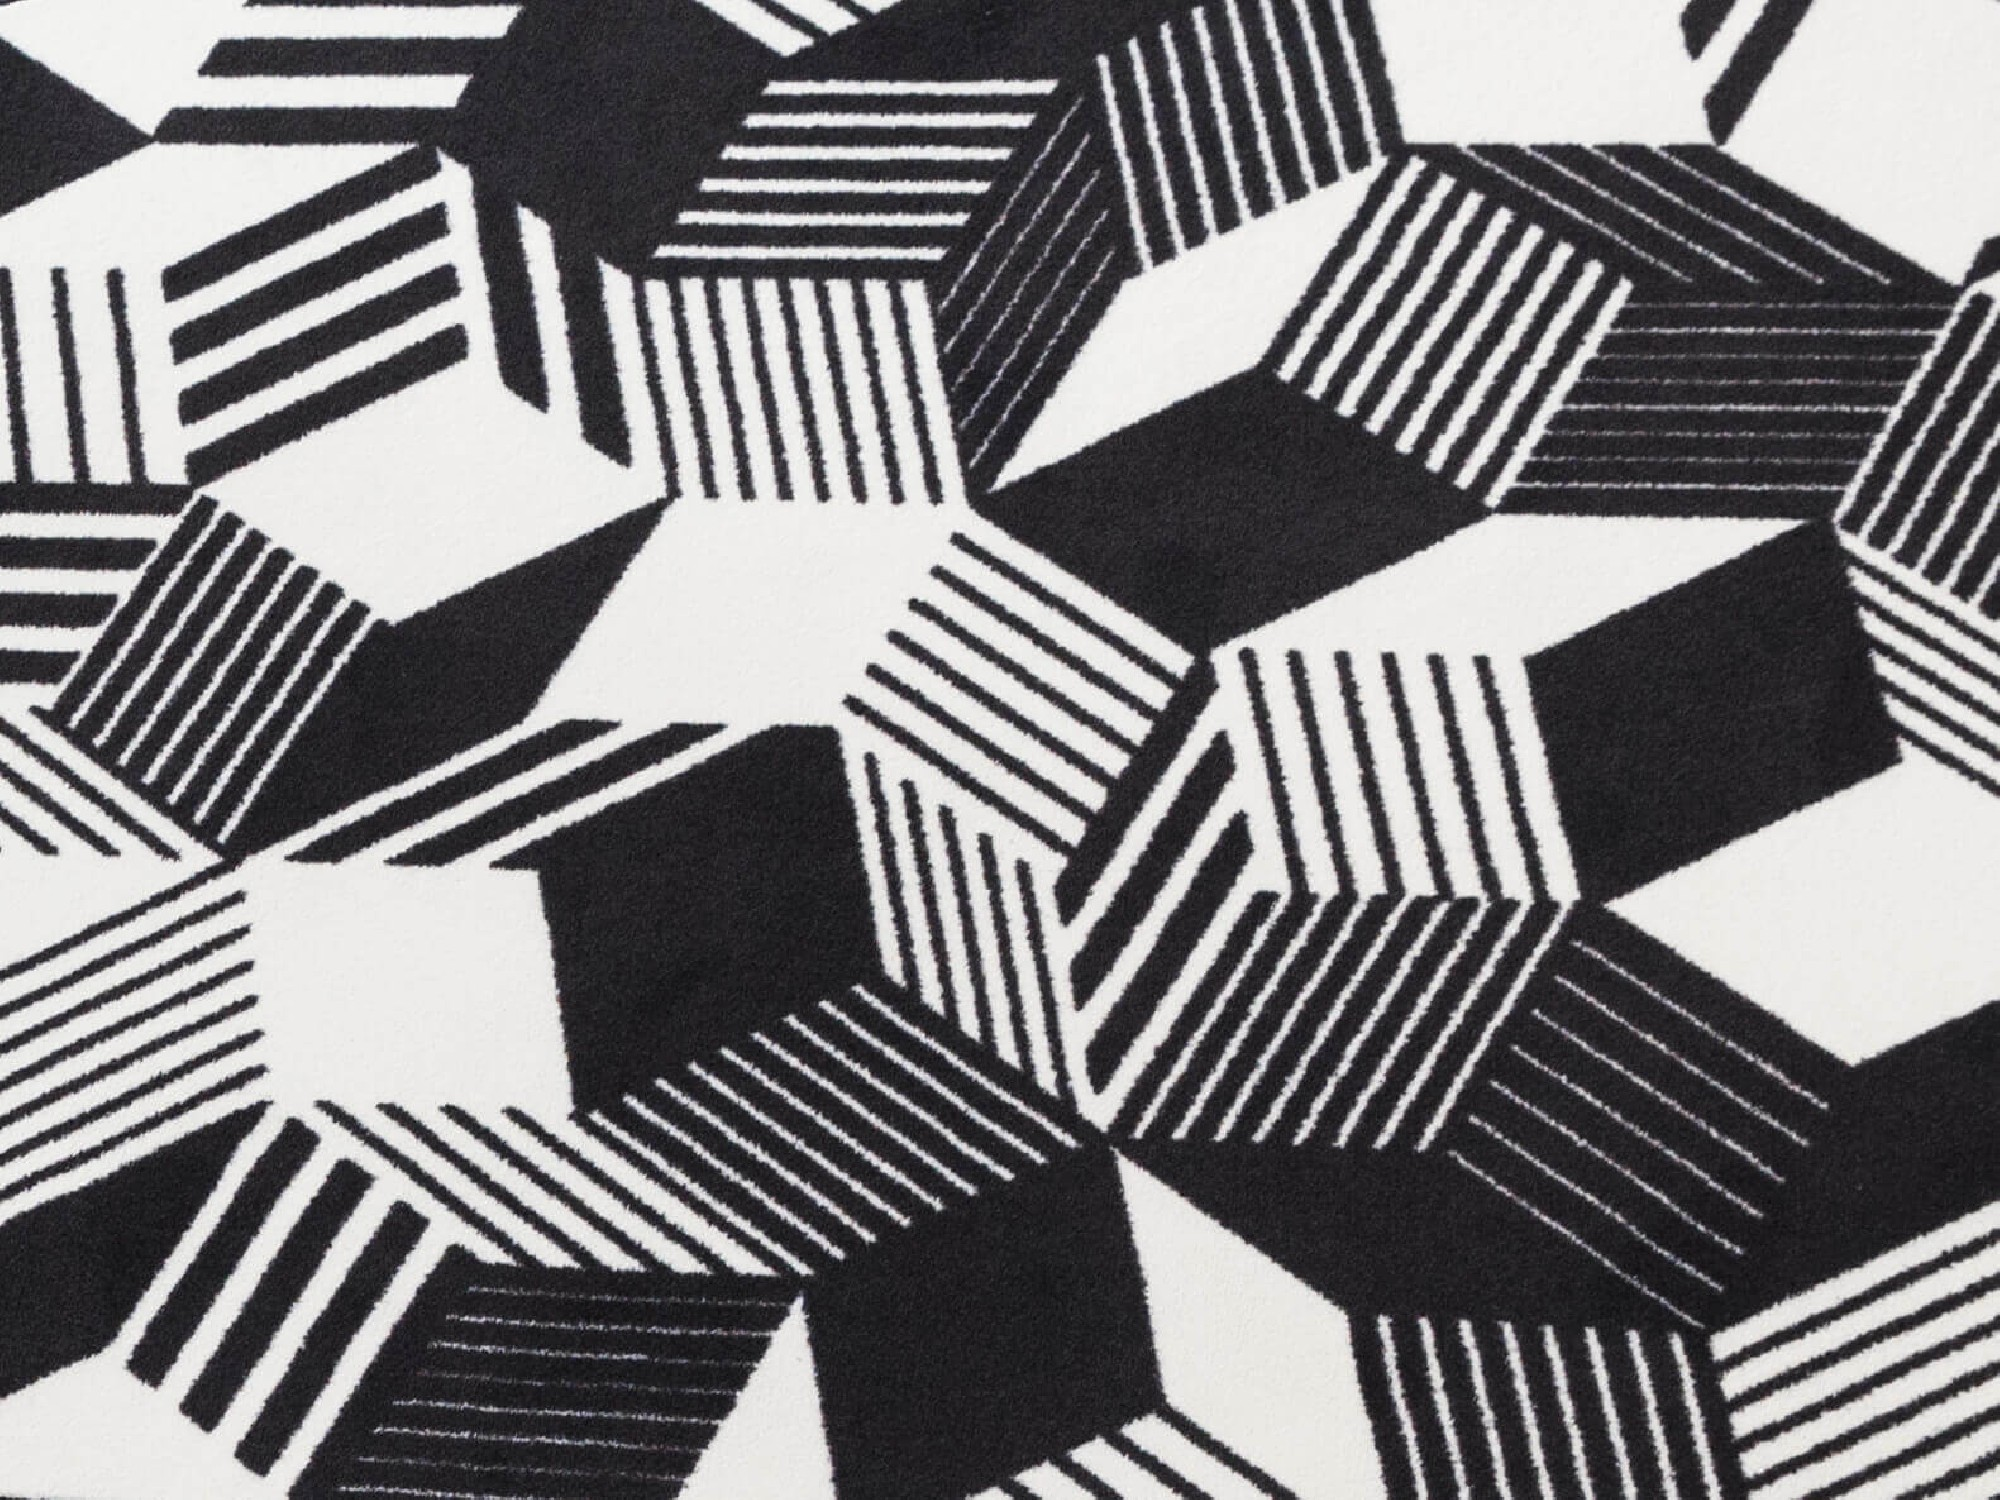 Tapis géométriques Penrose stripes black and white, details, Design IchetKar édition Bazartherapy